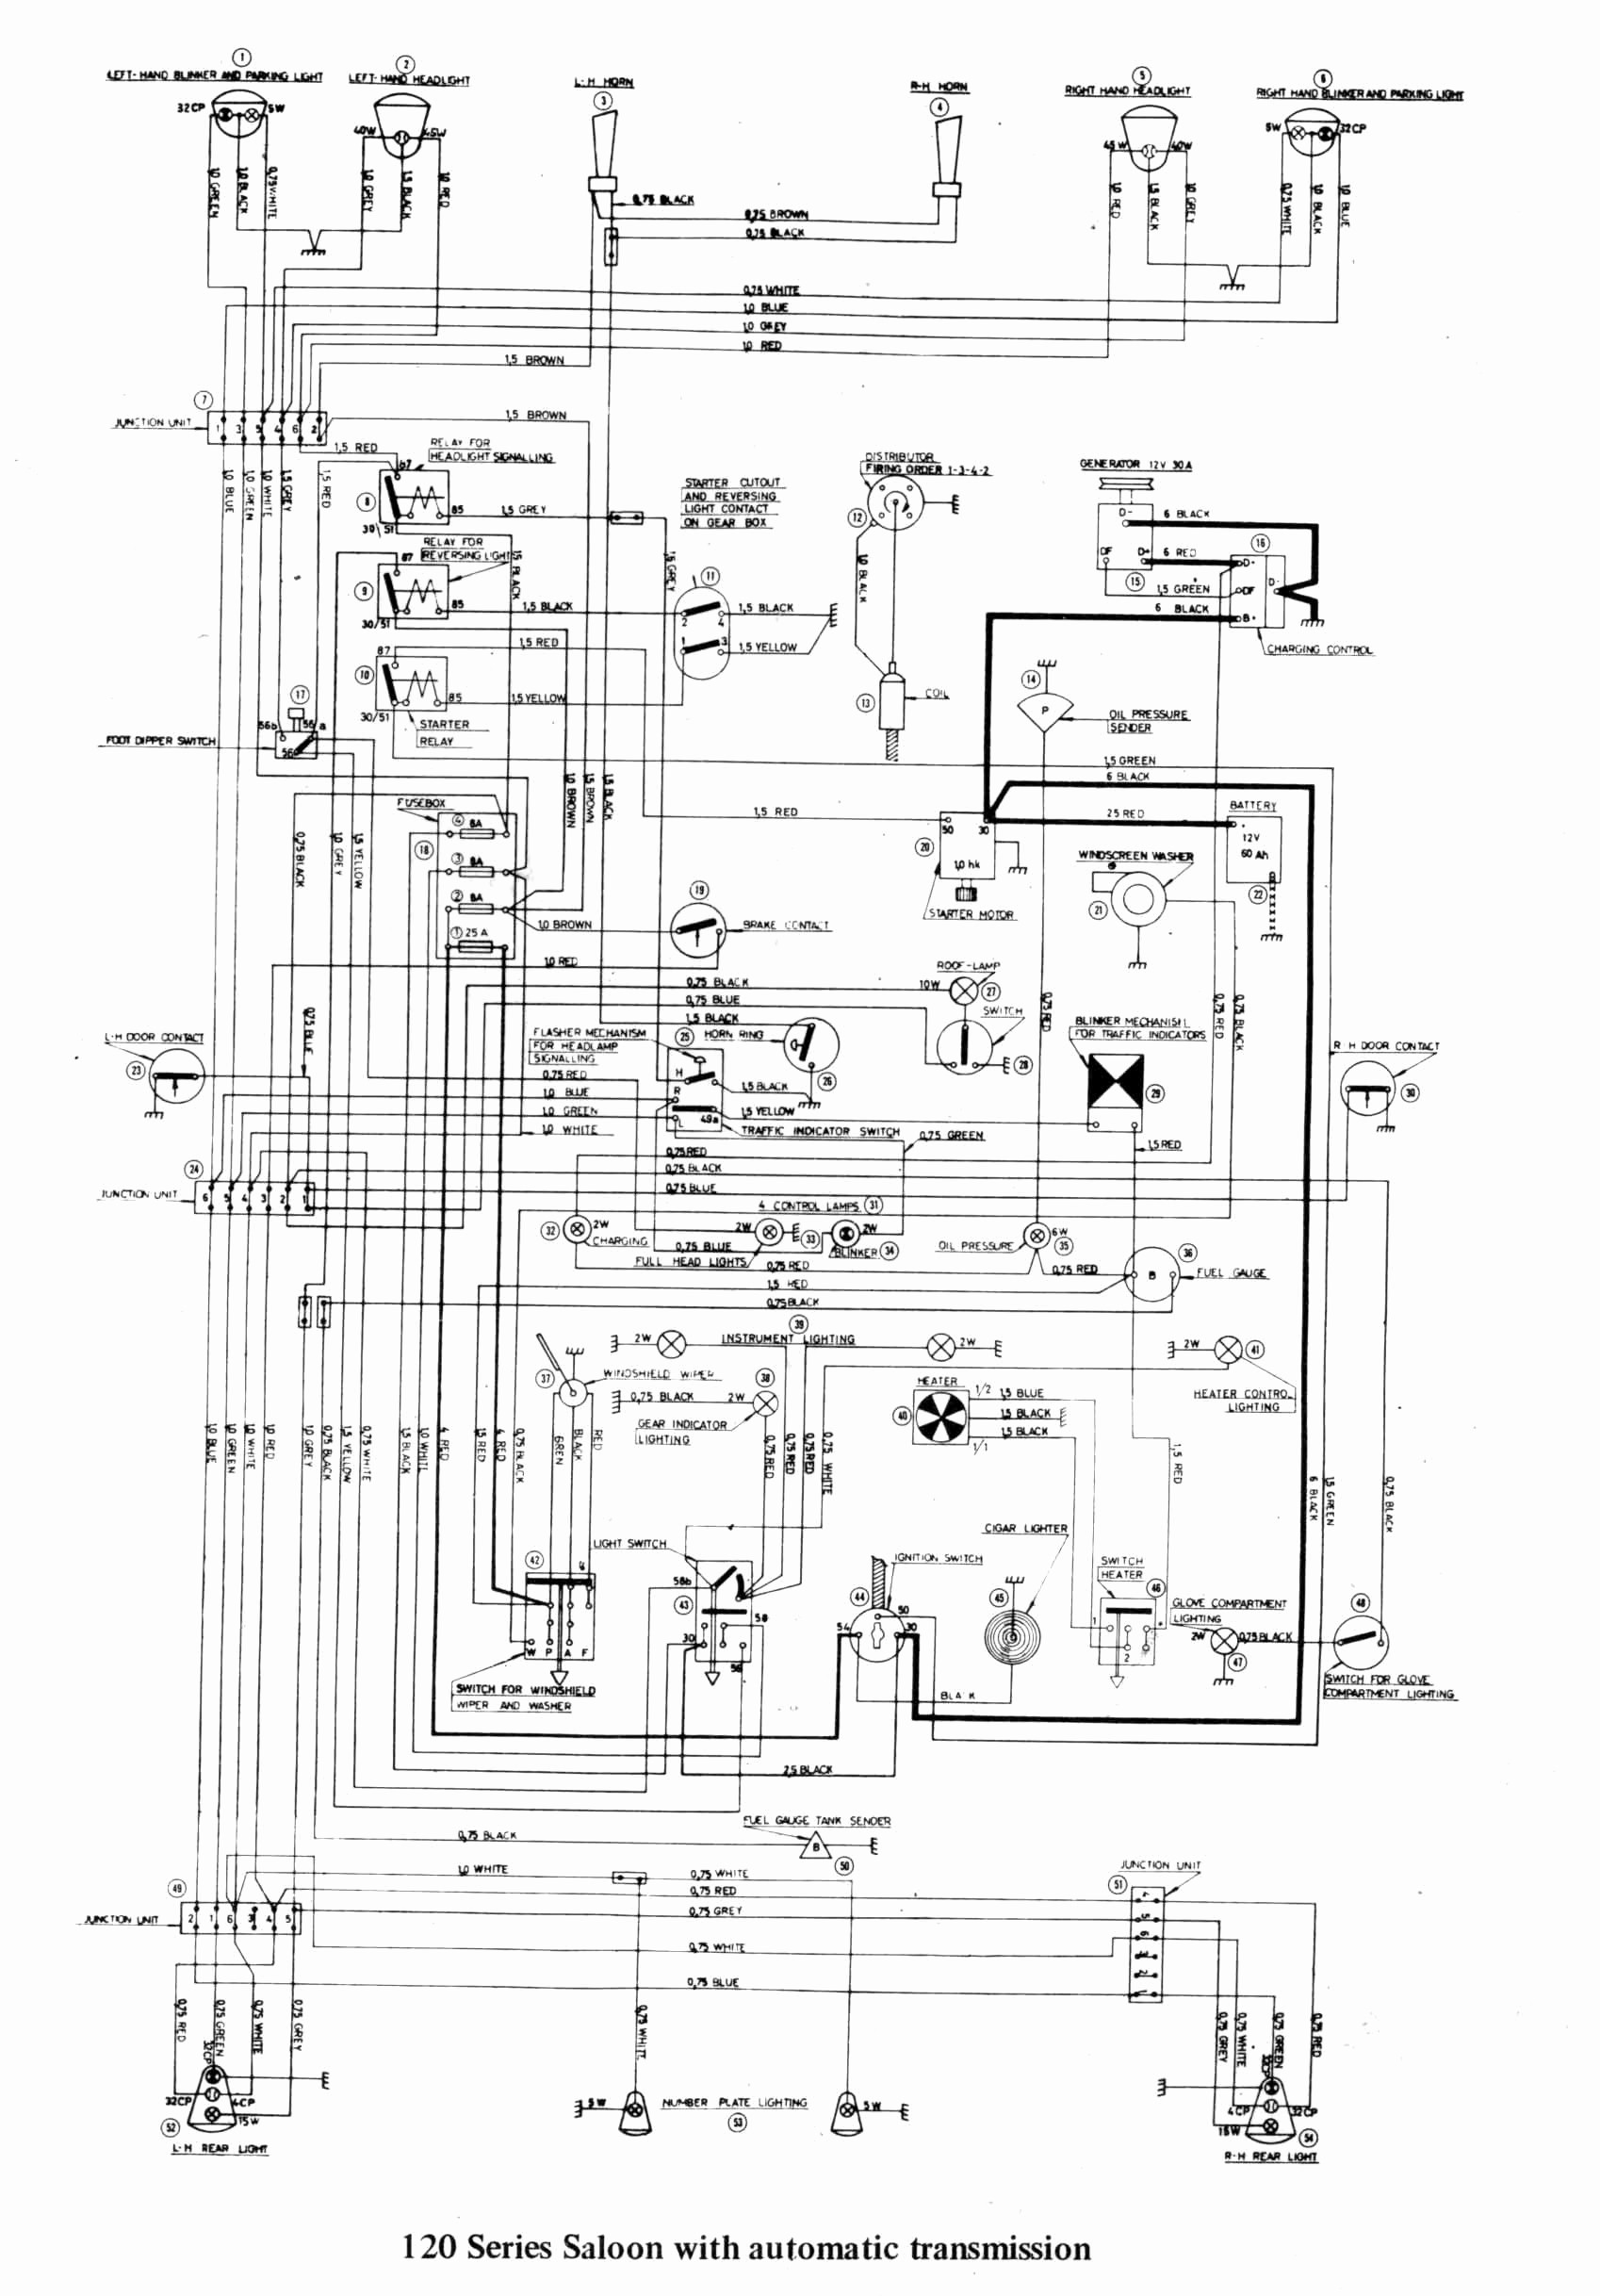 2001 Ford Expedition Engine Diagram Wiring Library Fuse Box Schematic 2002 Thunderbird Rh Detoxicrecenze Com